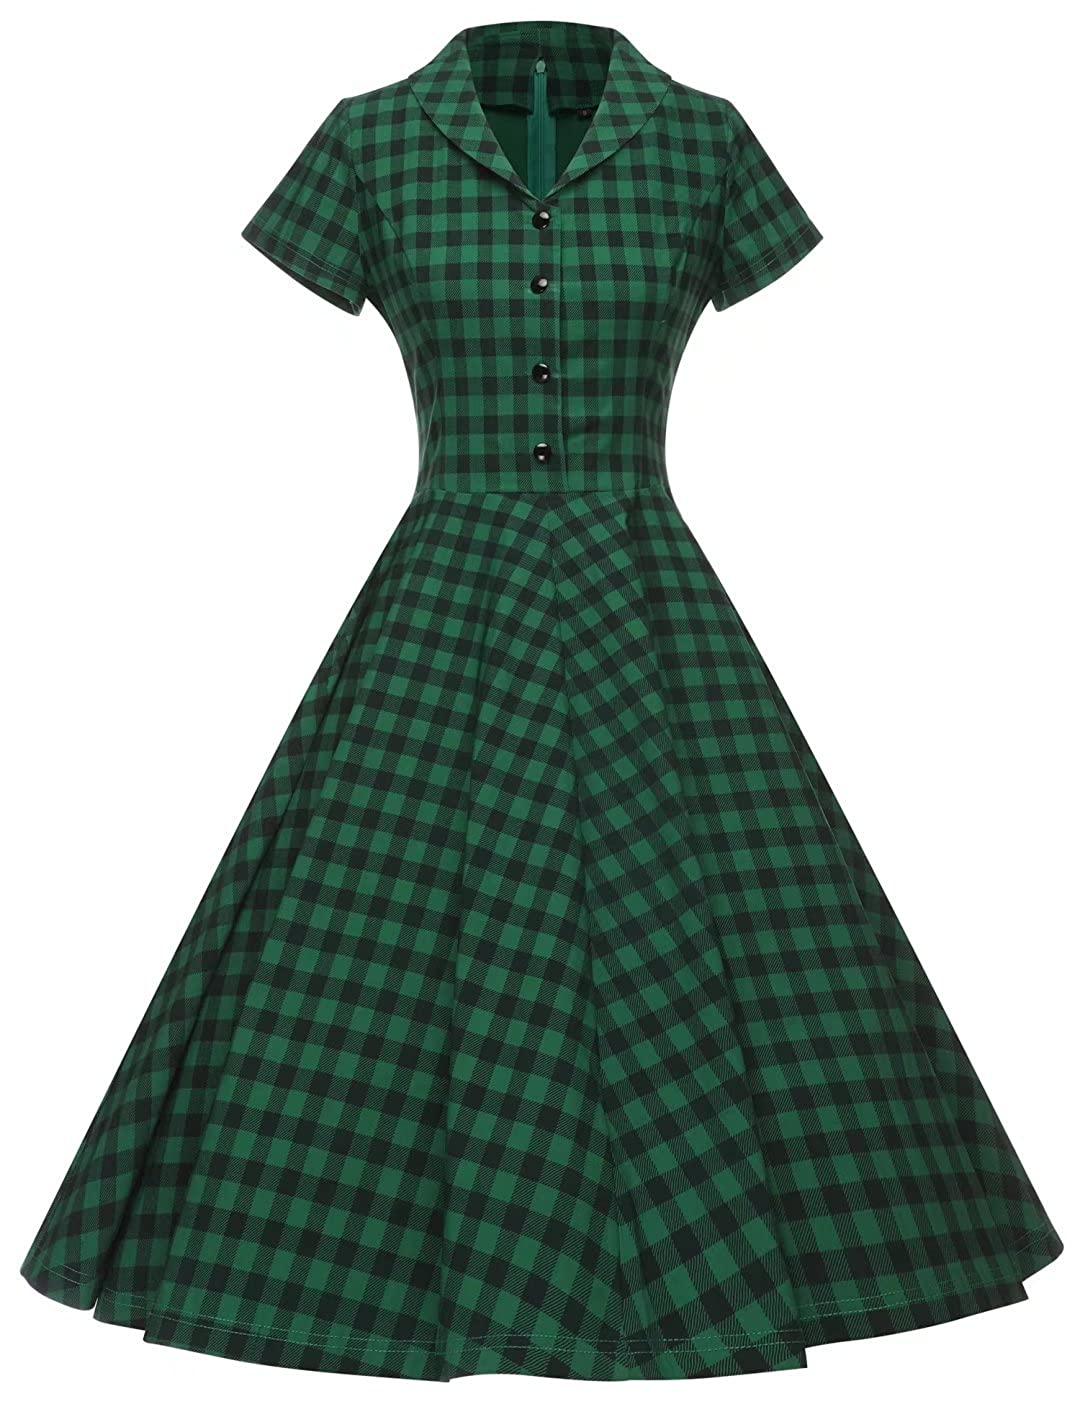 1940s Fashion Advice for Short Women GownTown Womens 1950s Vintage Cap Sleeve Plaid Swing Dress with Pockets $38.98 AT vintagedancer.com